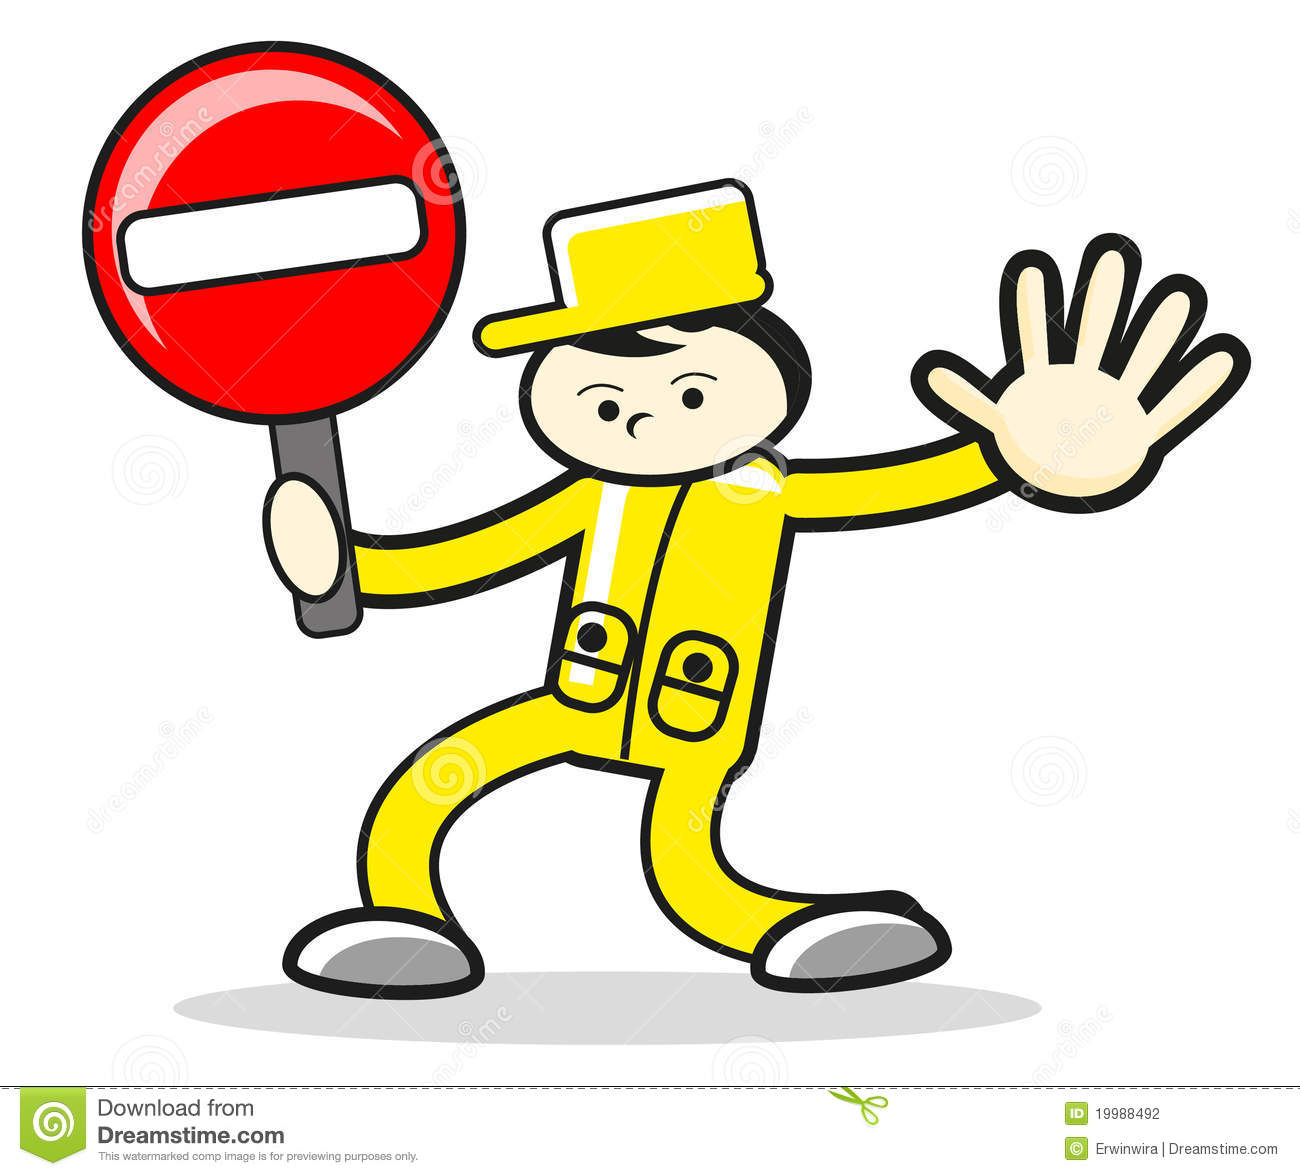 character cartoon man stop sign stock vector illustration of rh dreamstime com stop sign cartoon picture stop sign cartoon black and white